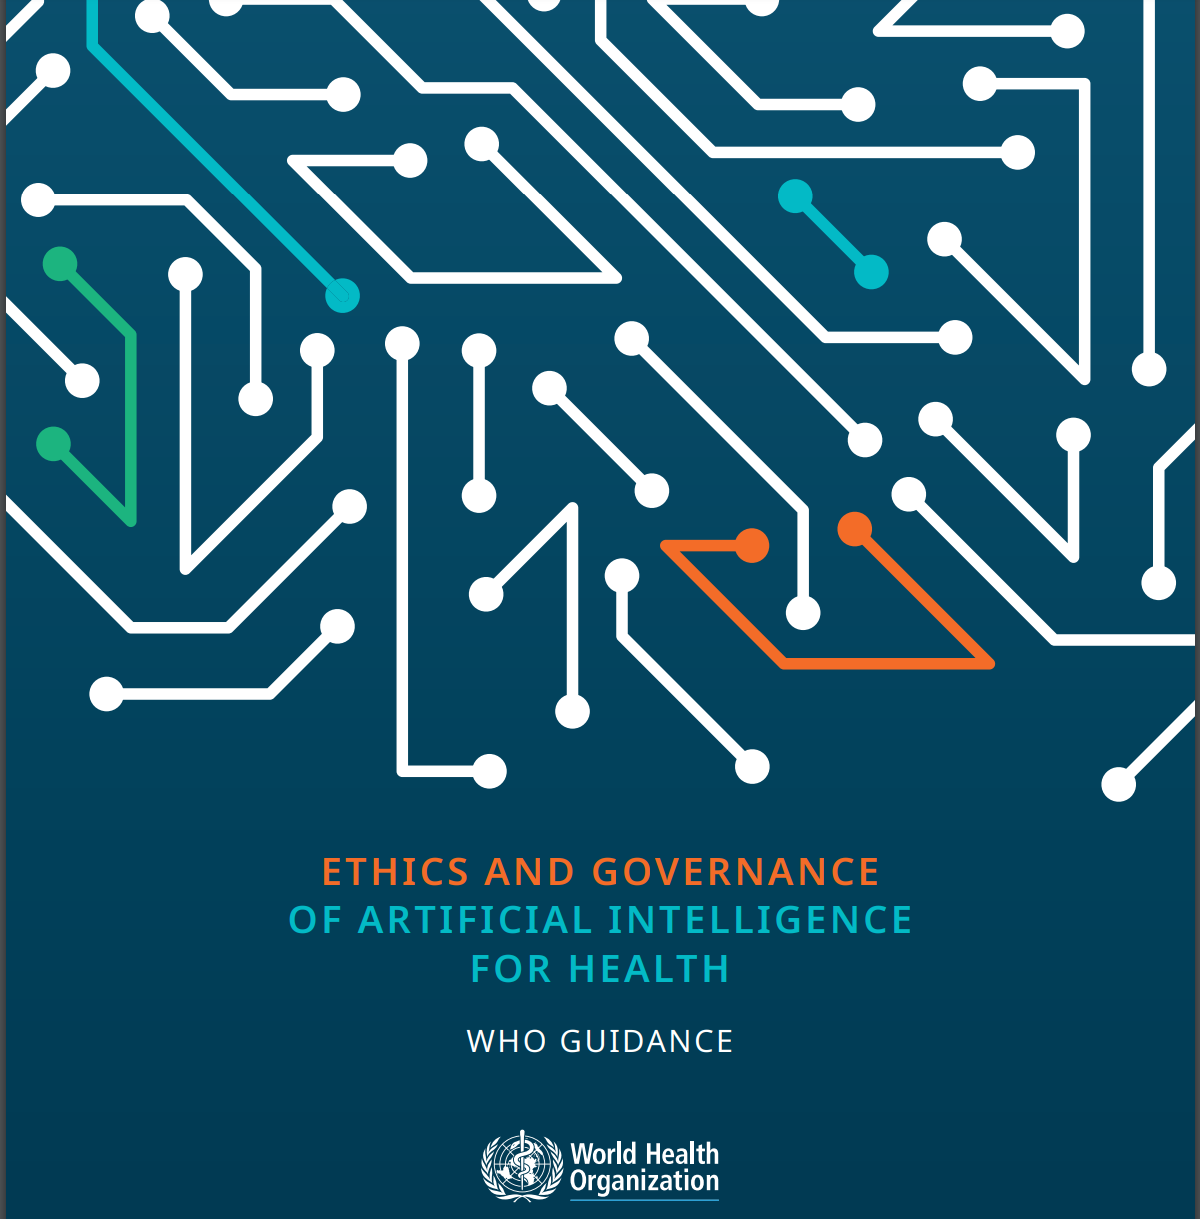 6 Key Ethical Principles for The Use of AI for Health - WHO